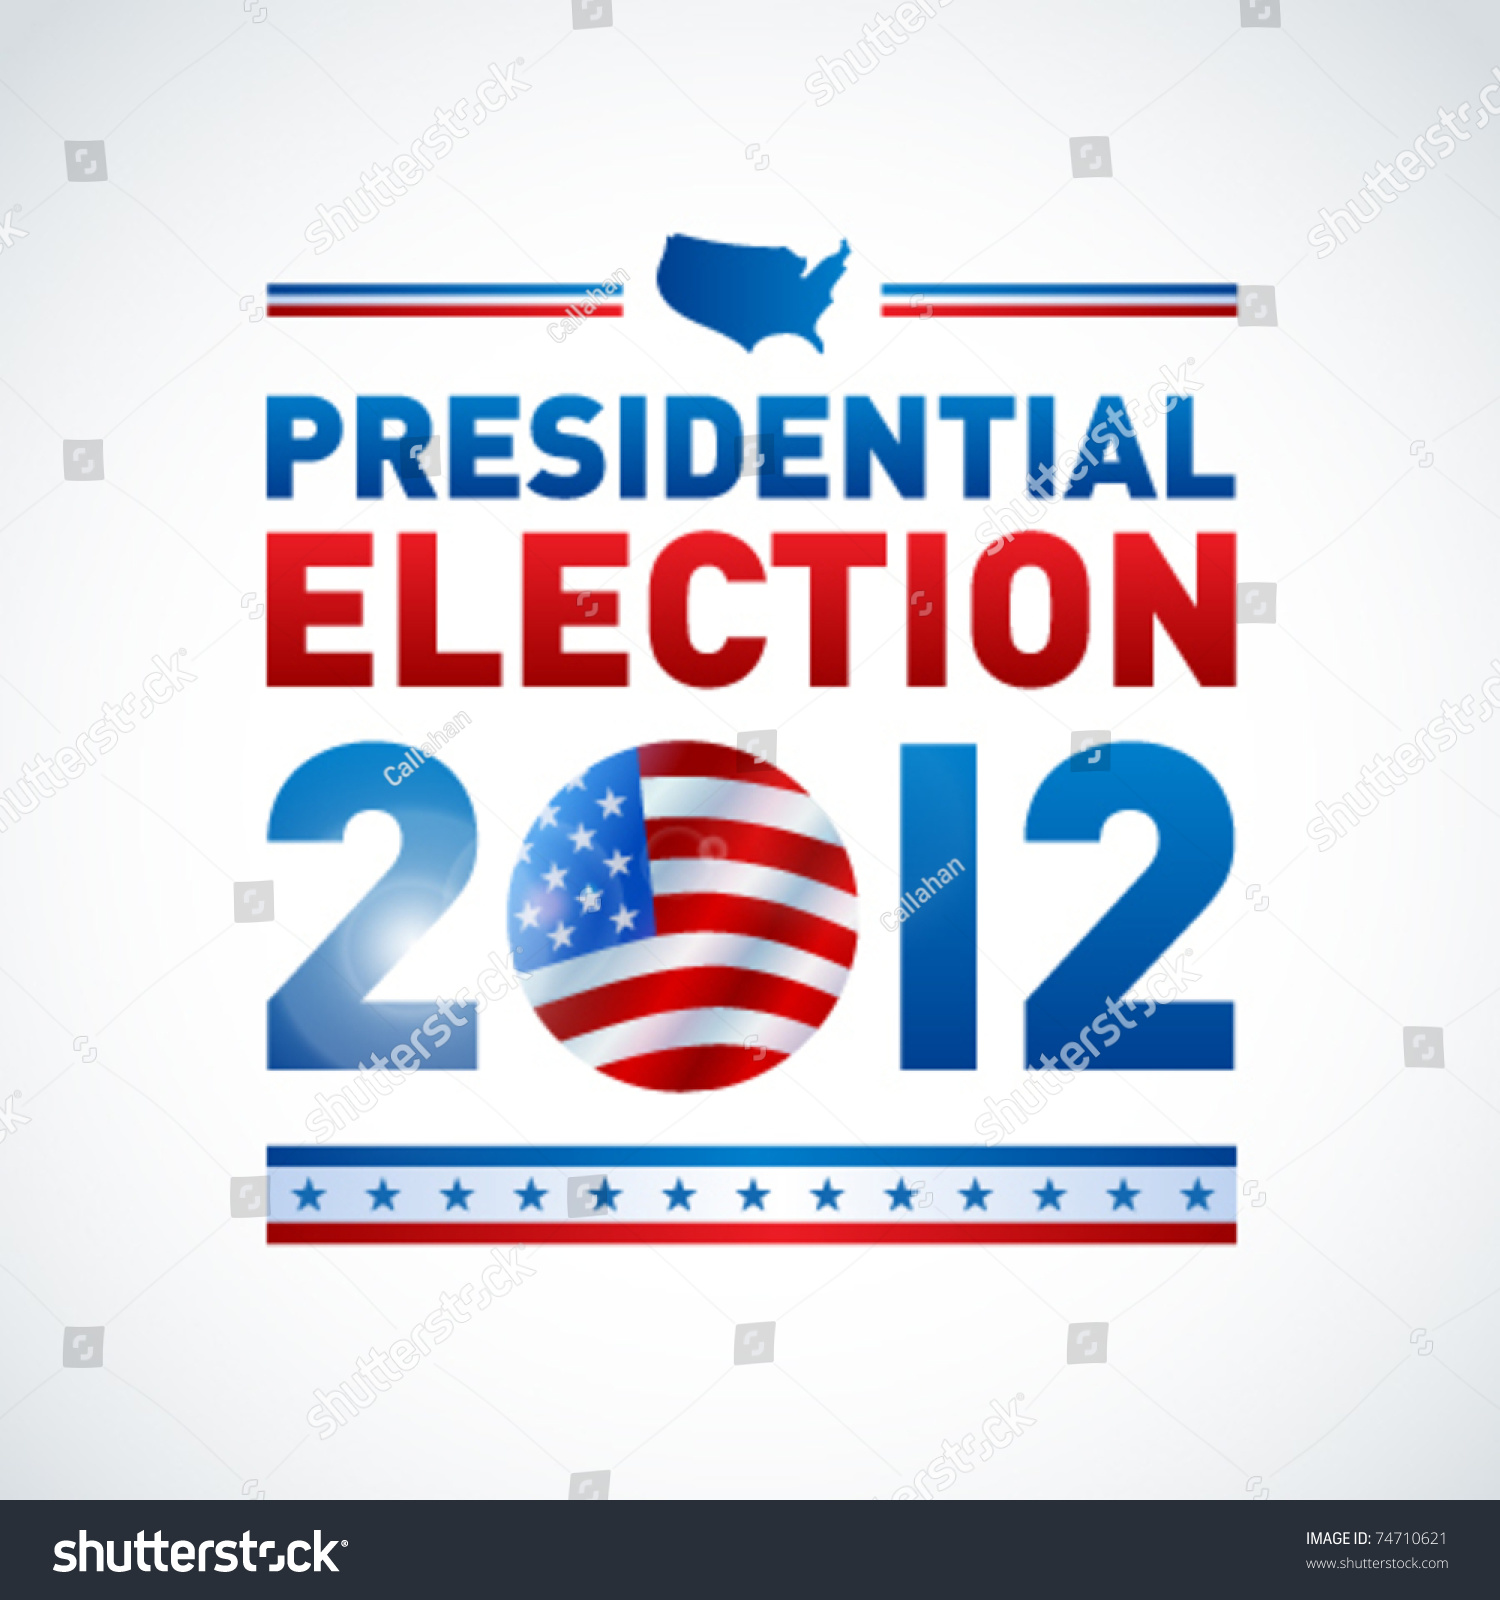 Us presidential election 2012 stock vector 74710621 for For how long do we elect the president